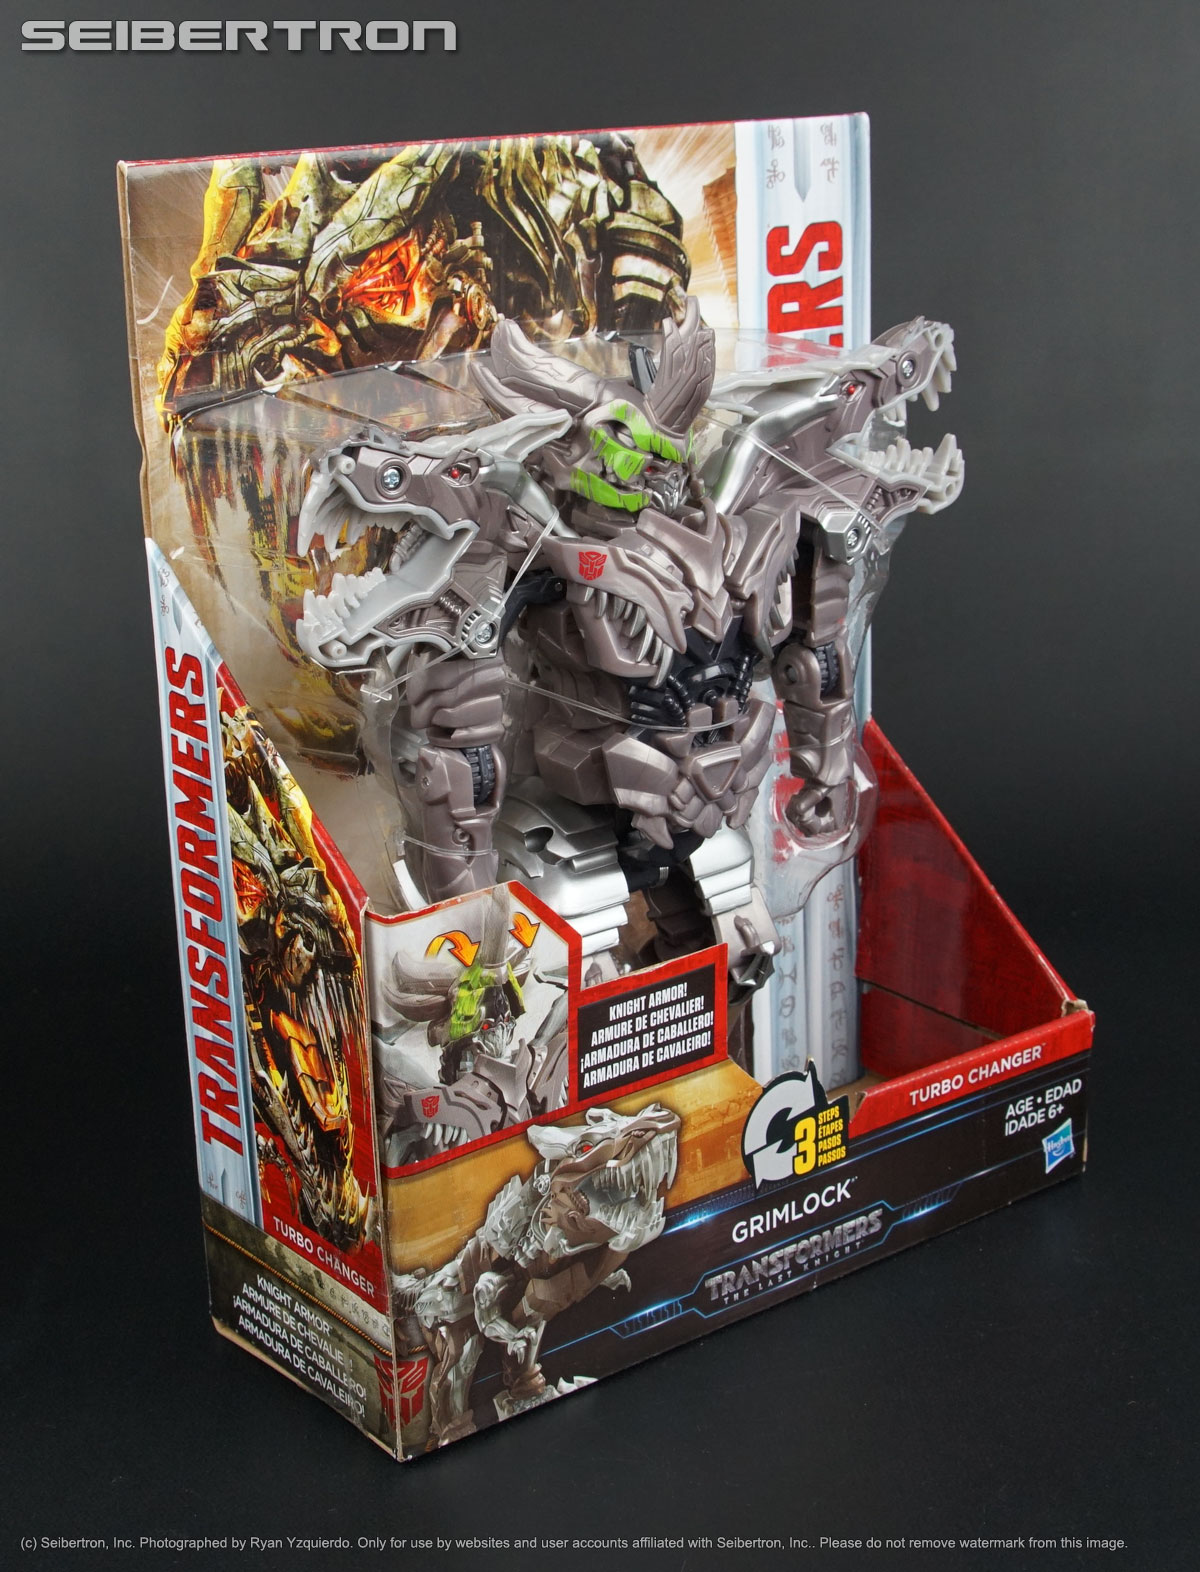 knight armor turbo changer grimlock transformers last knight tlk new 2017 ebay. Black Bedroom Furniture Sets. Home Design Ideas